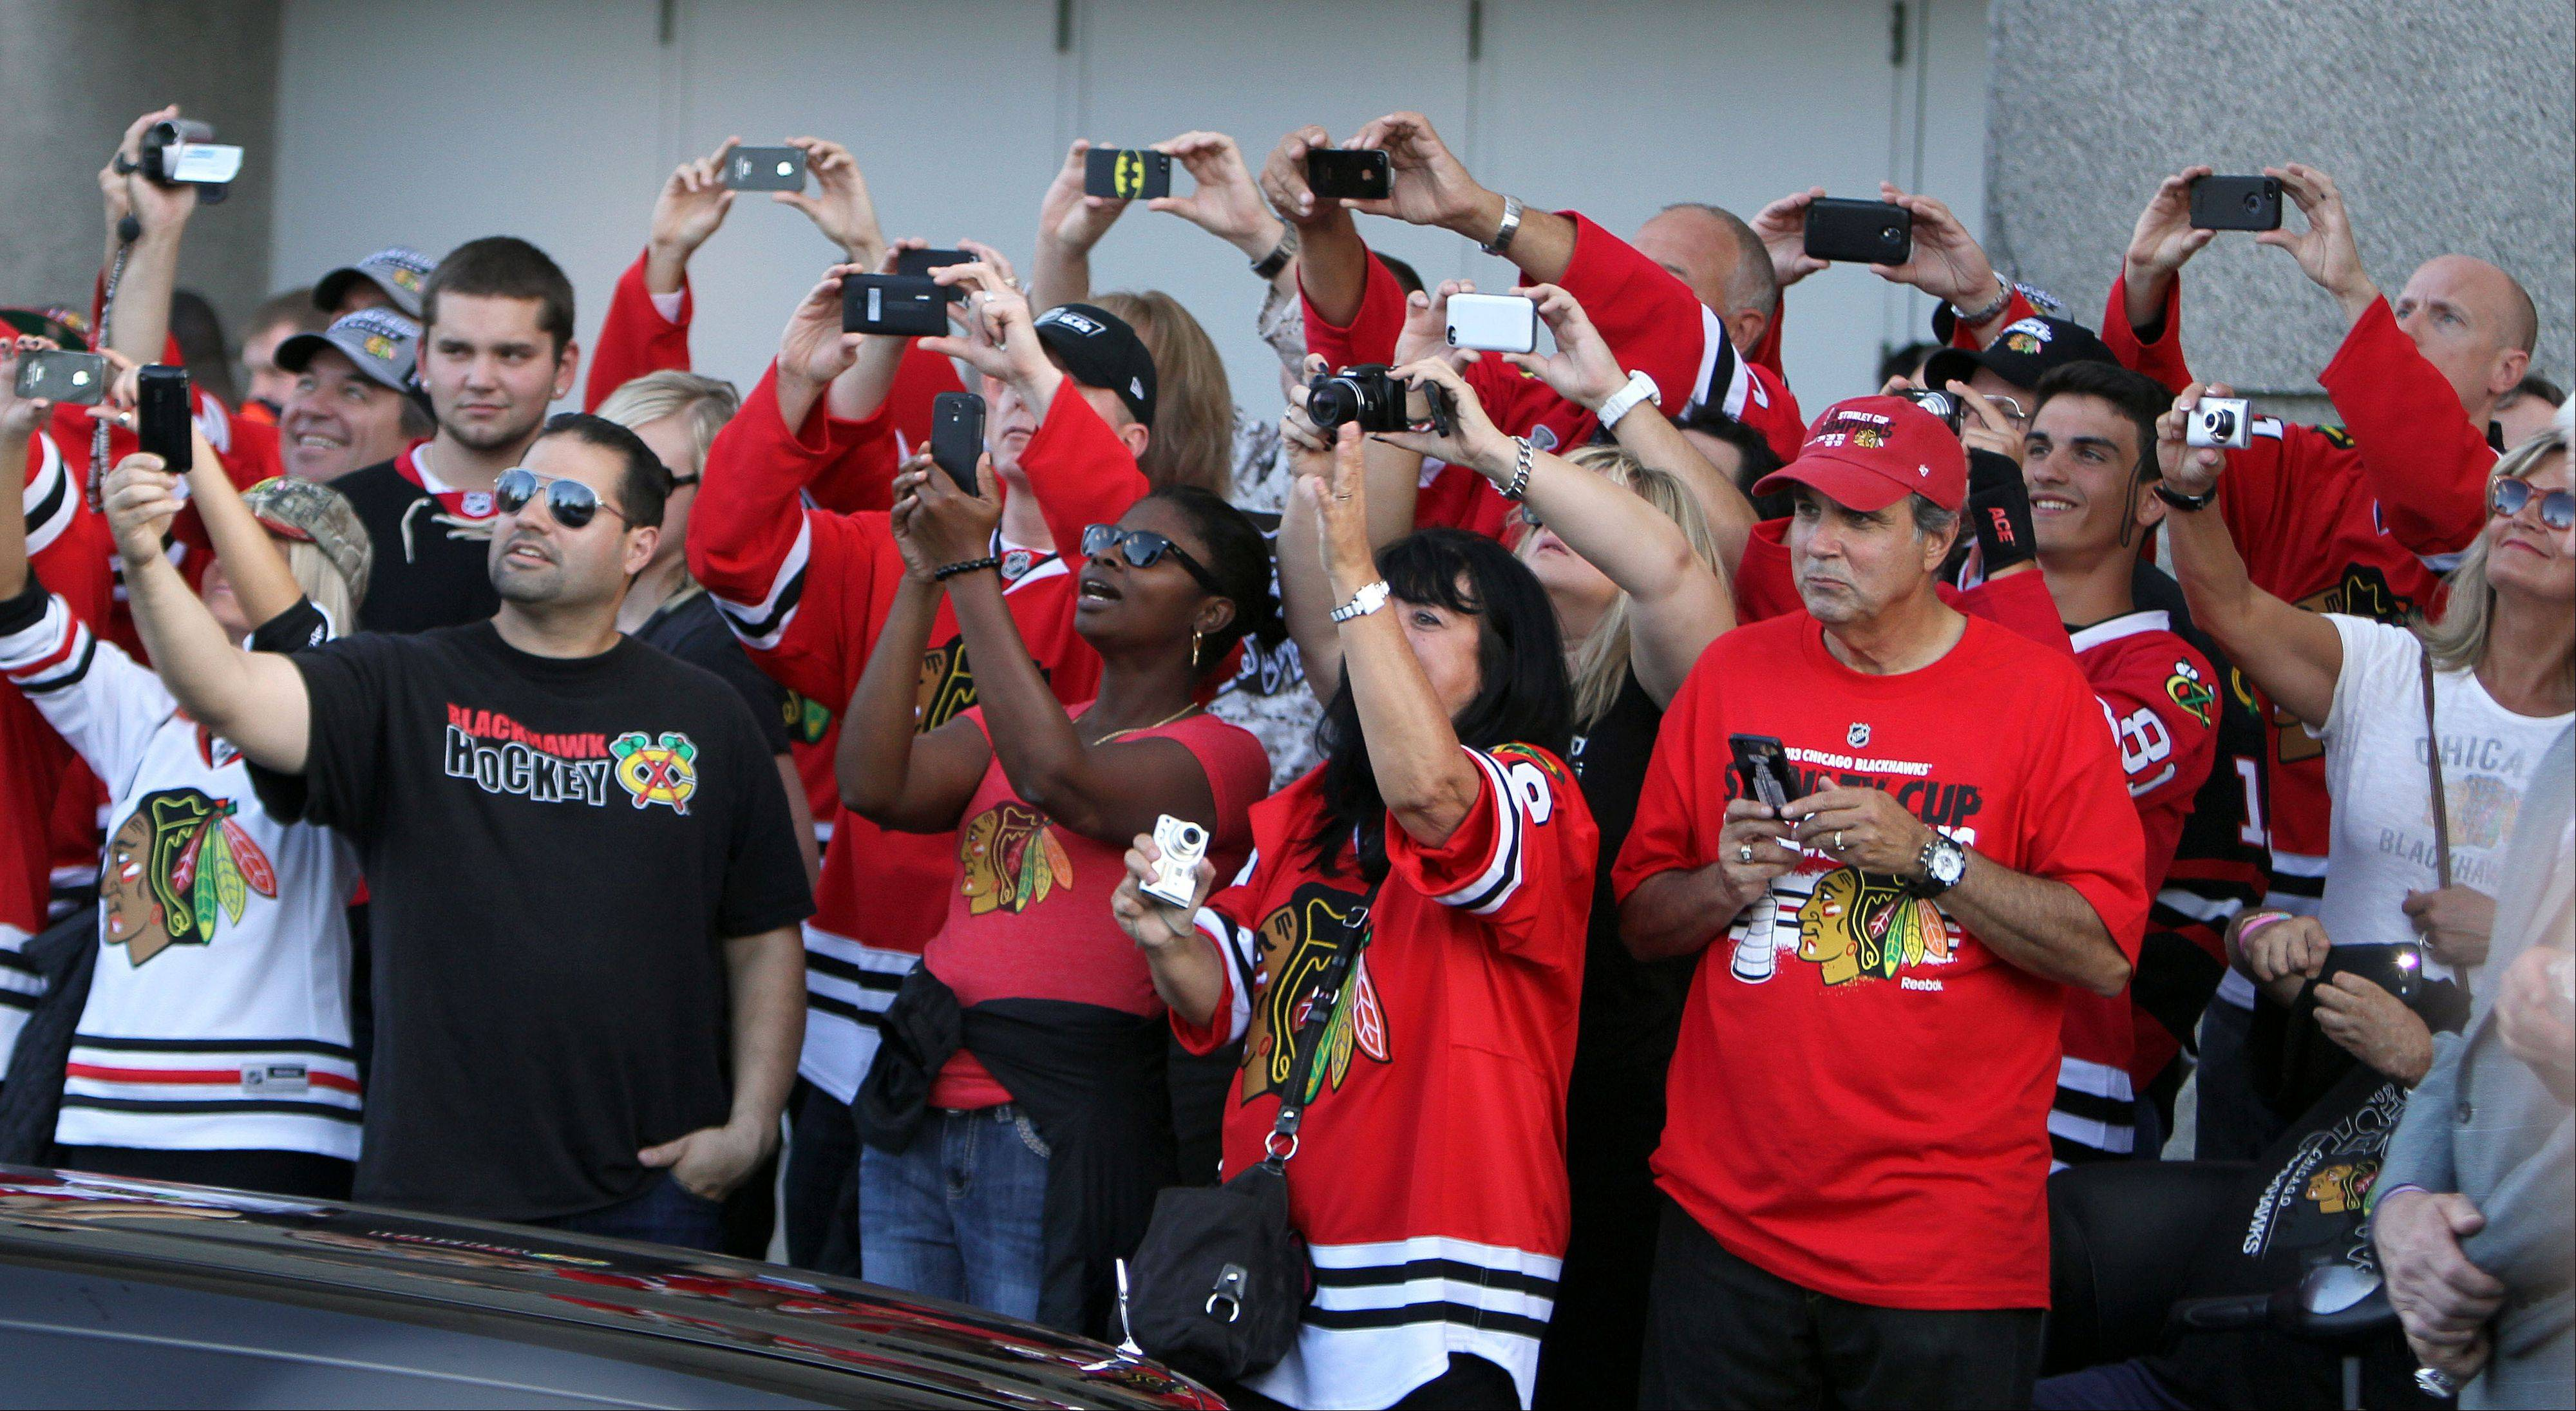 Fans cheer during a red carpet arrival of the Blackhawks.